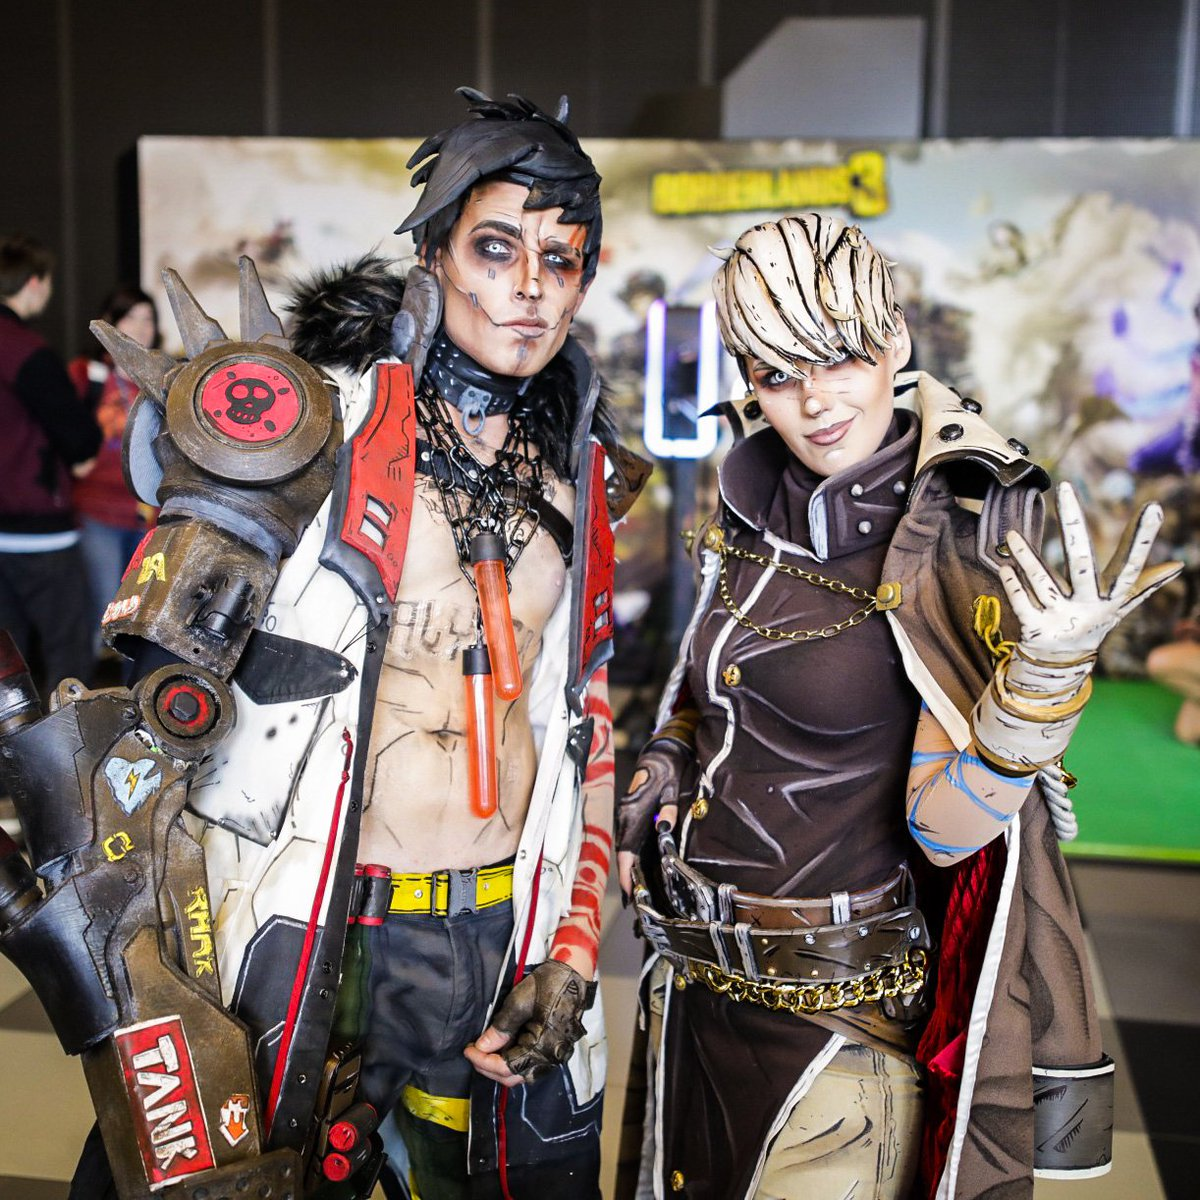 Remember to like, follow and obey! #PAXAUS  #Borderlands3 <br>http://pic.twitter.com/GTDBYn5iEK